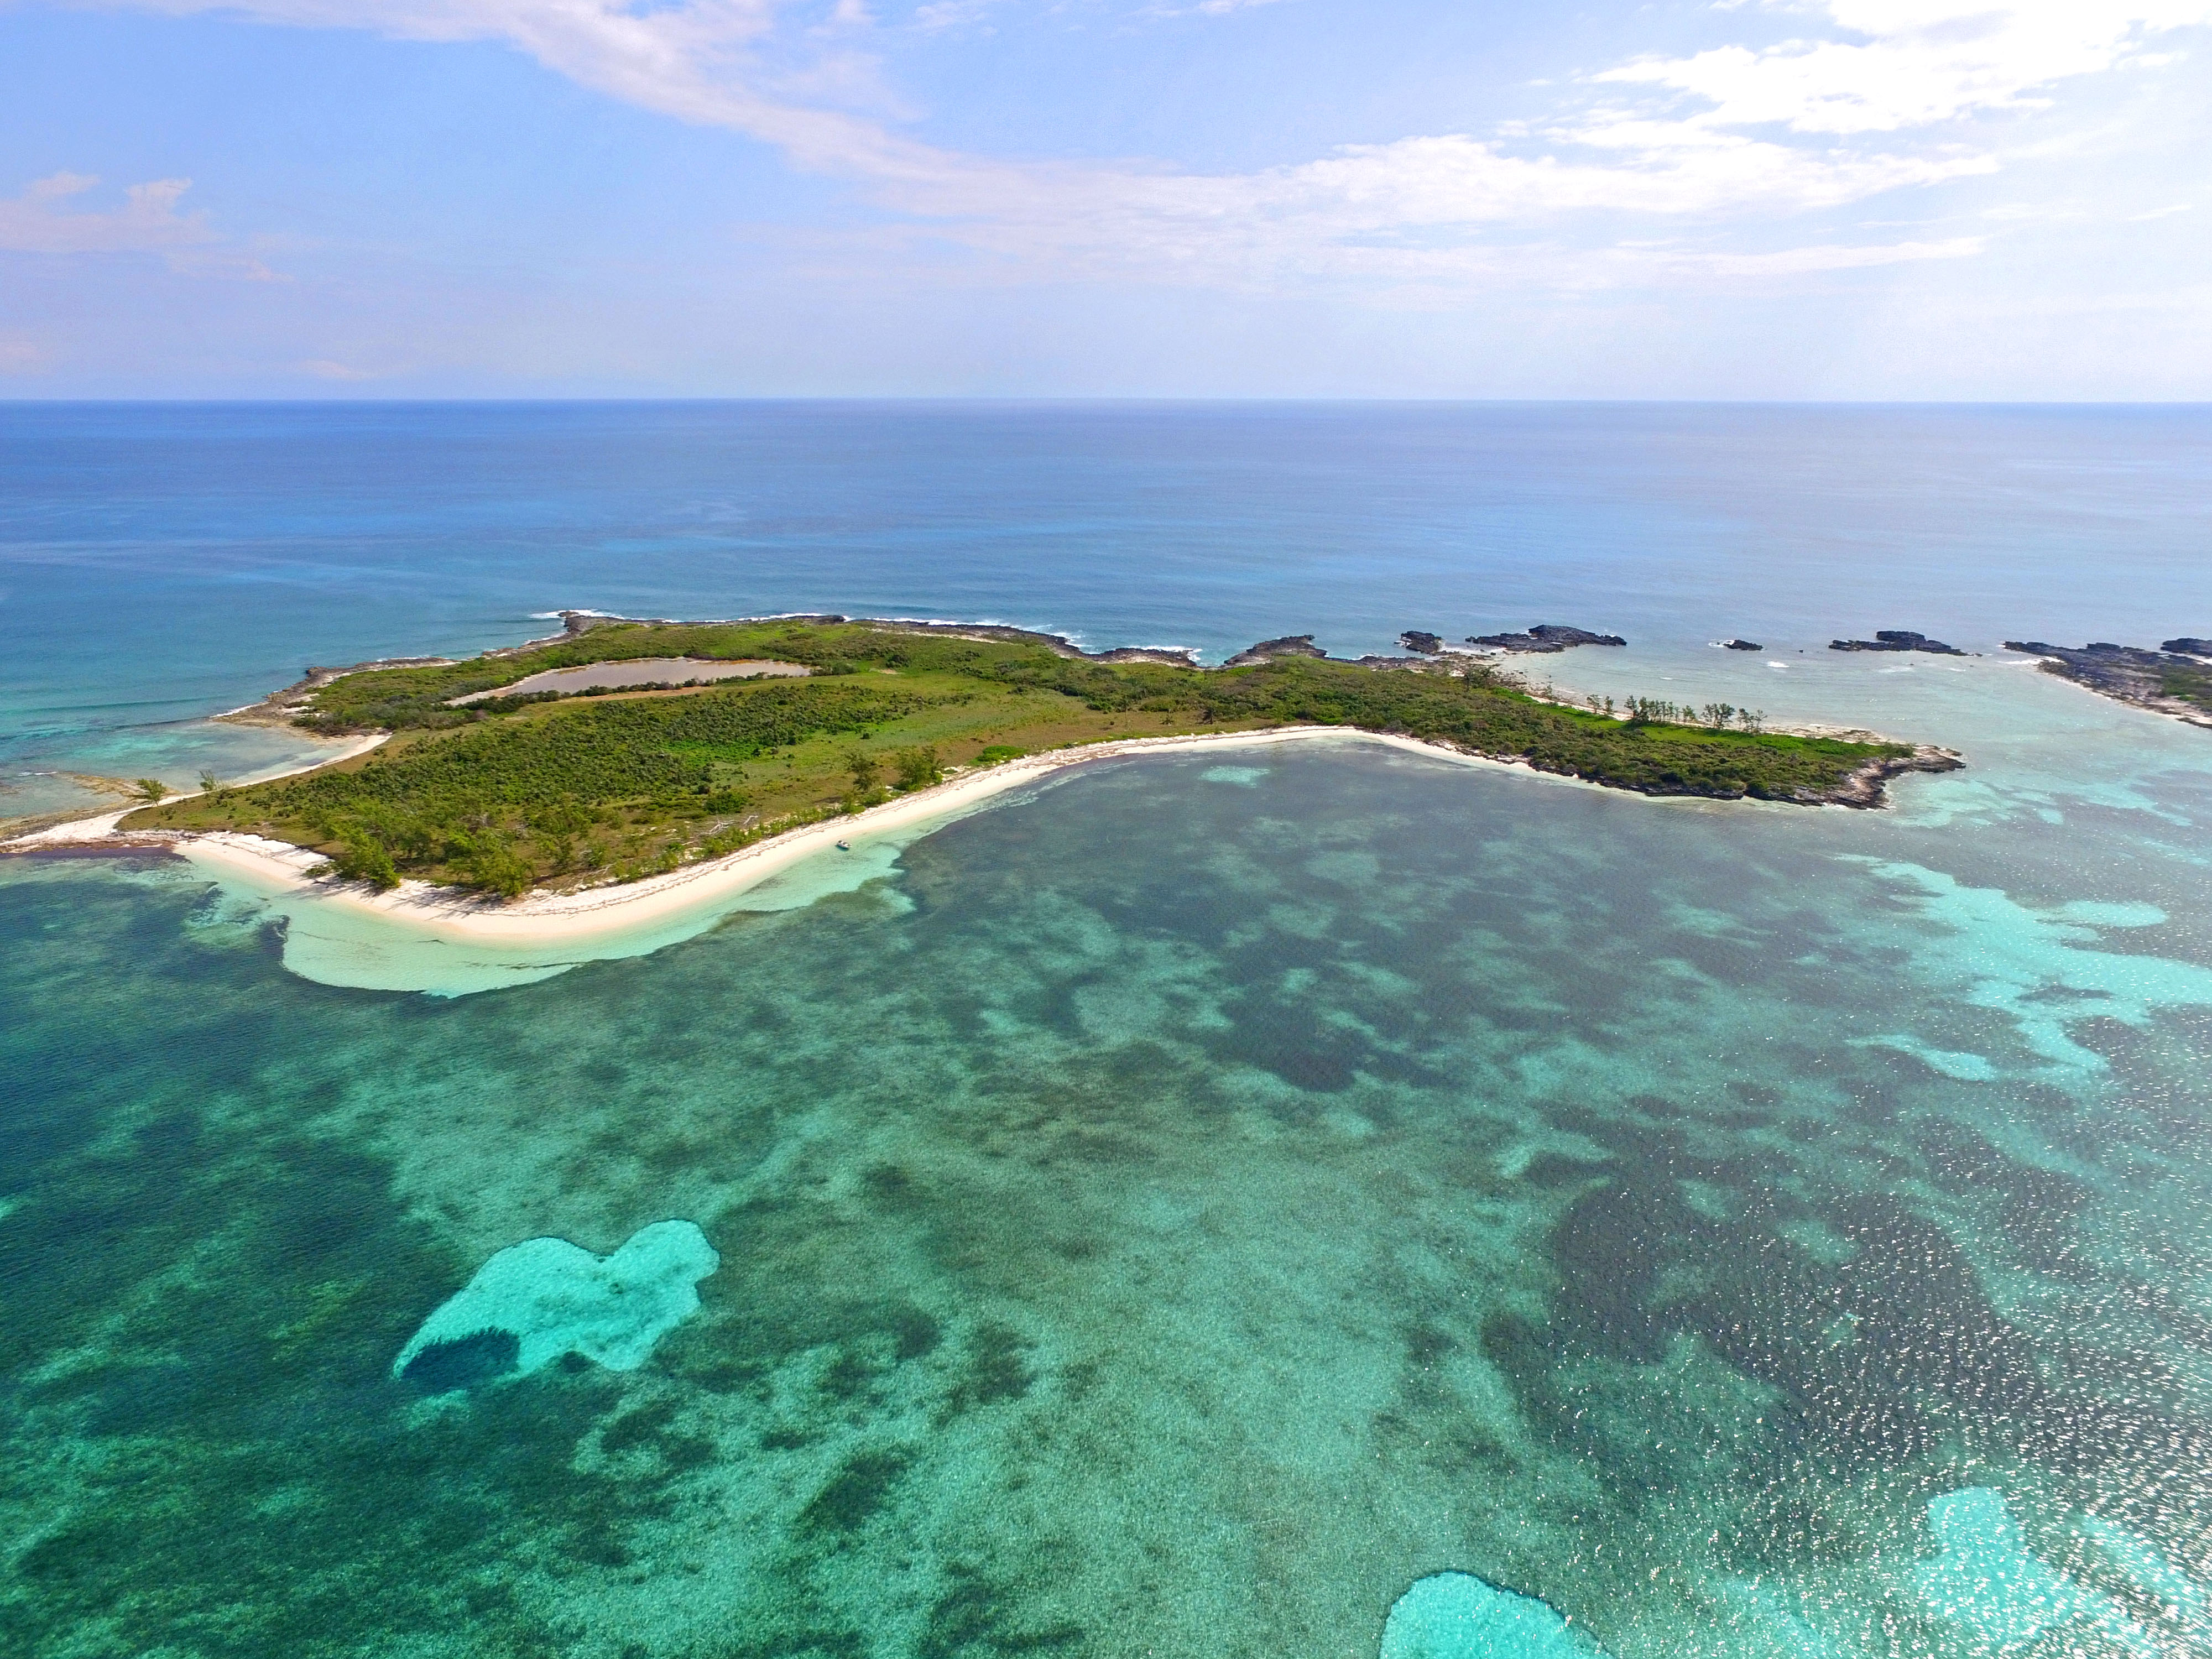 Petite cay bahamas caribbean private islands for sale for Bahamas private island for sale